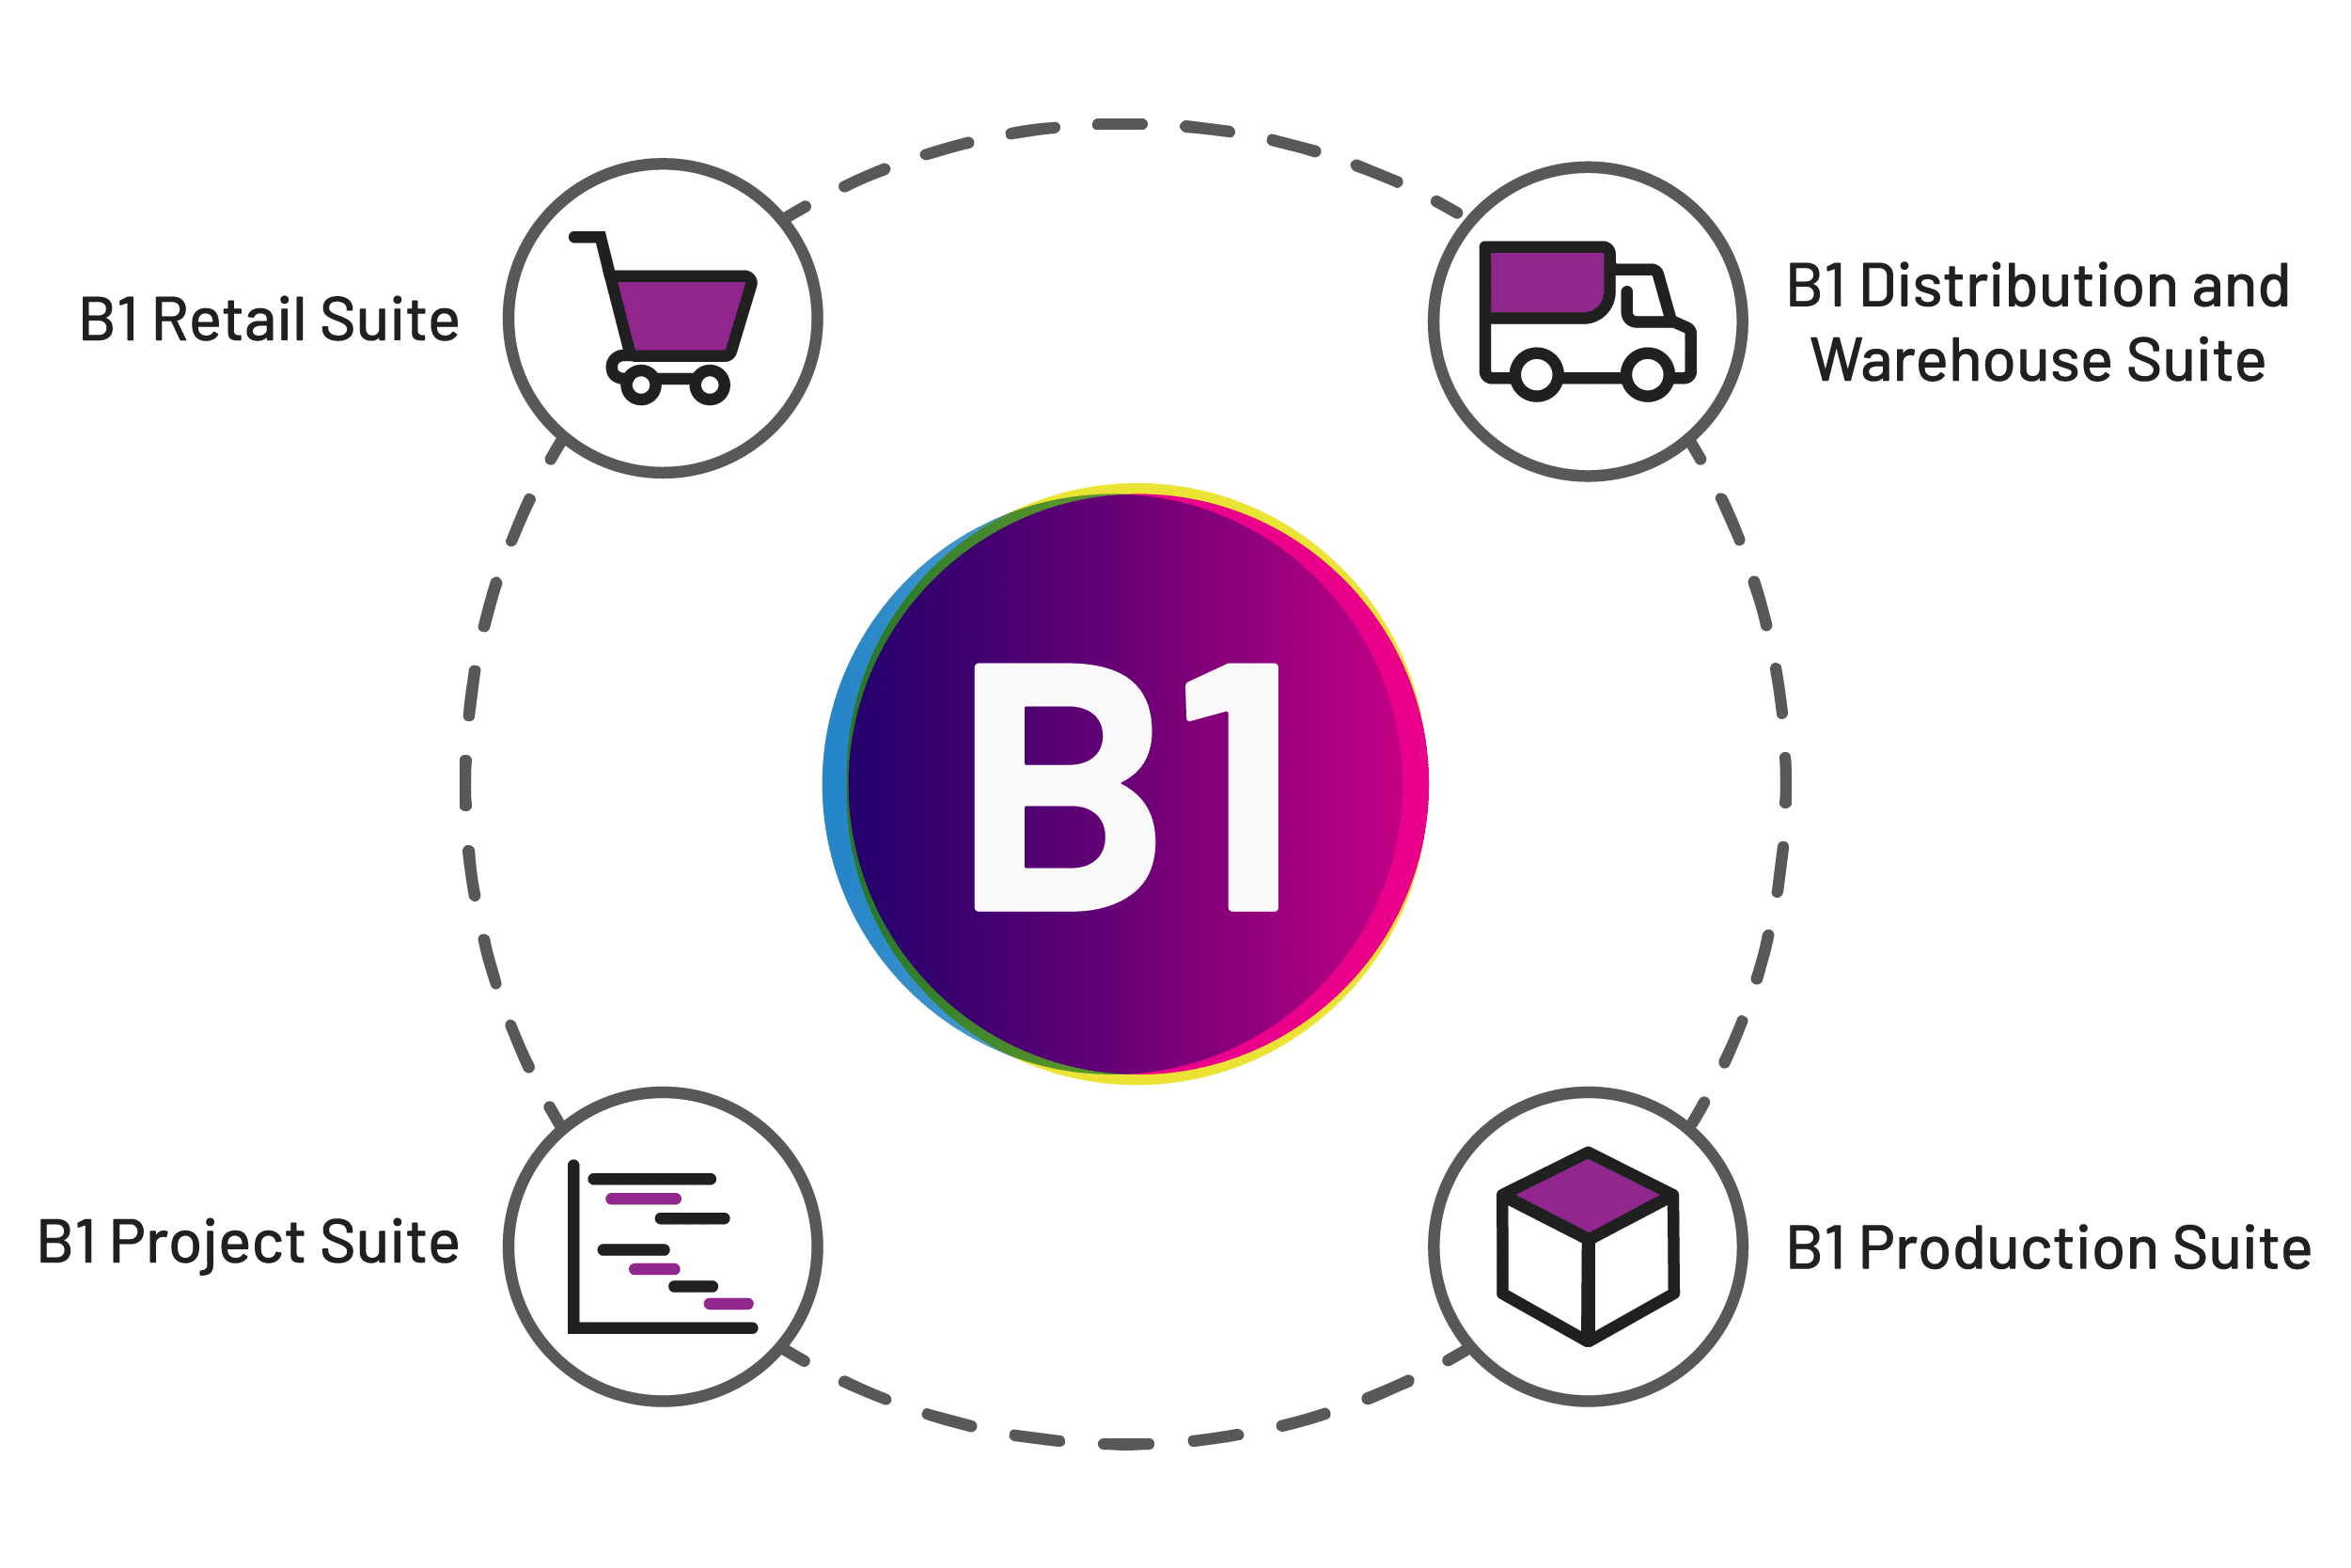 B1add-ons-suite